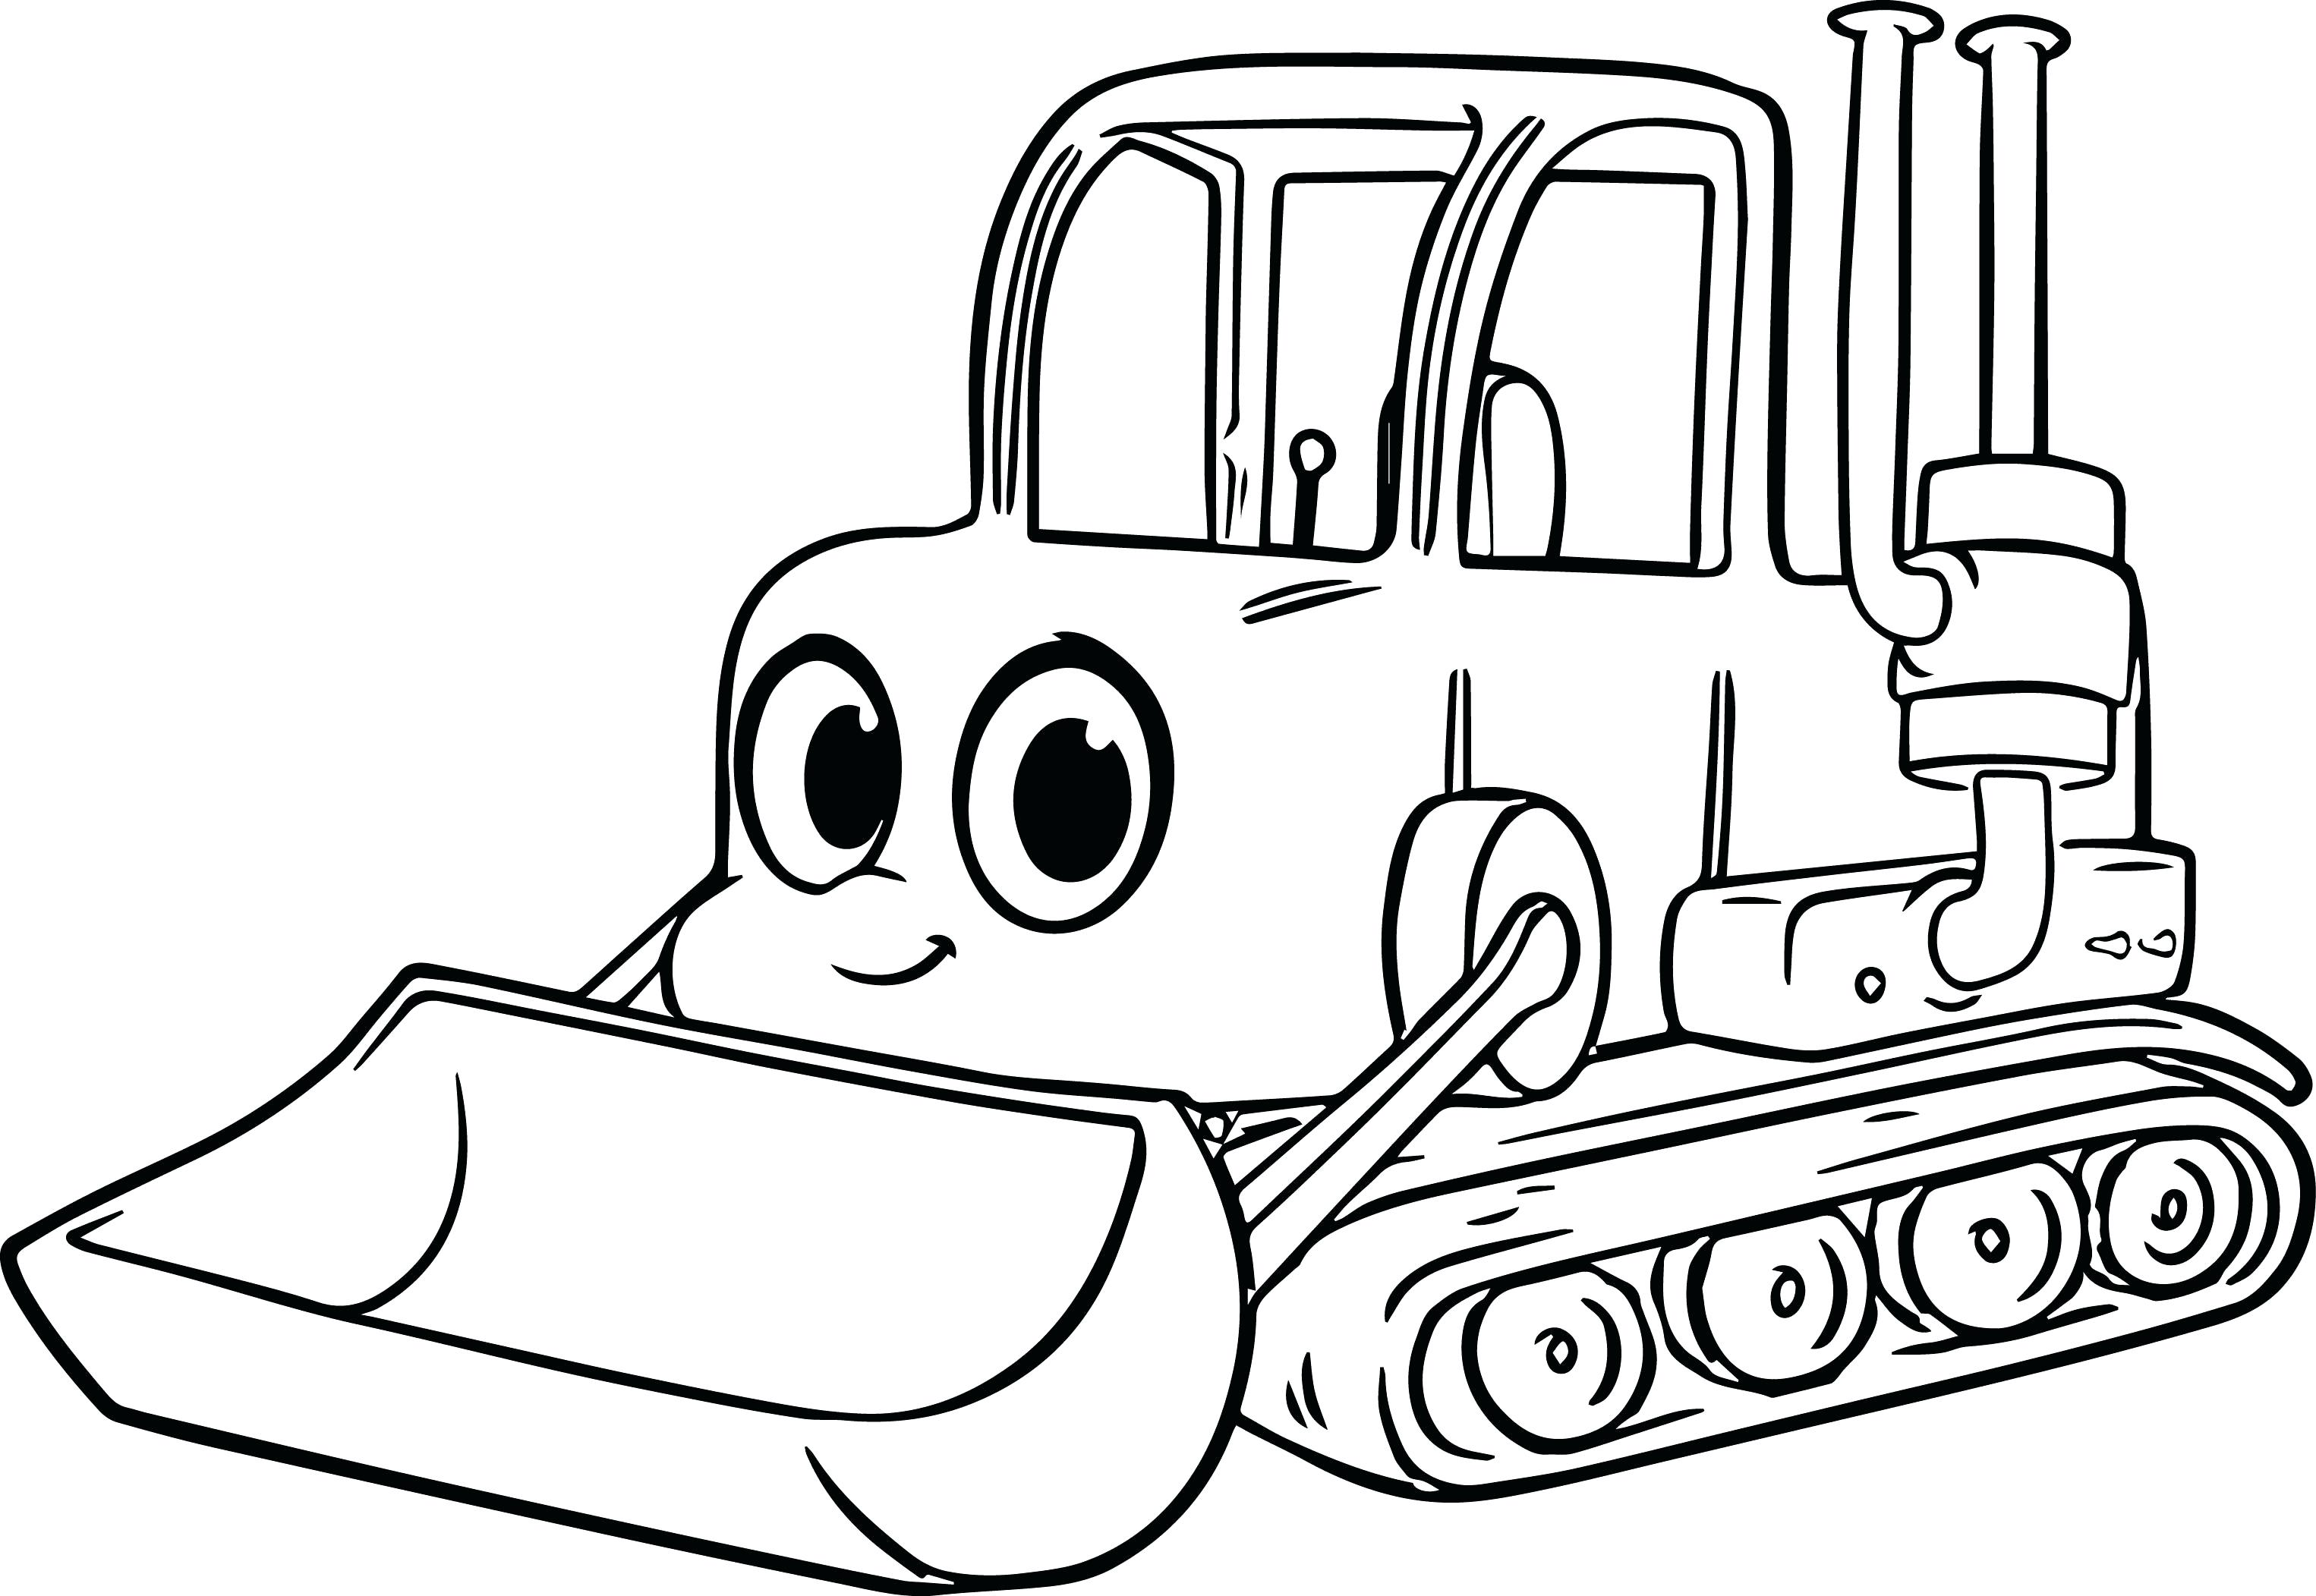 Digger Drawing